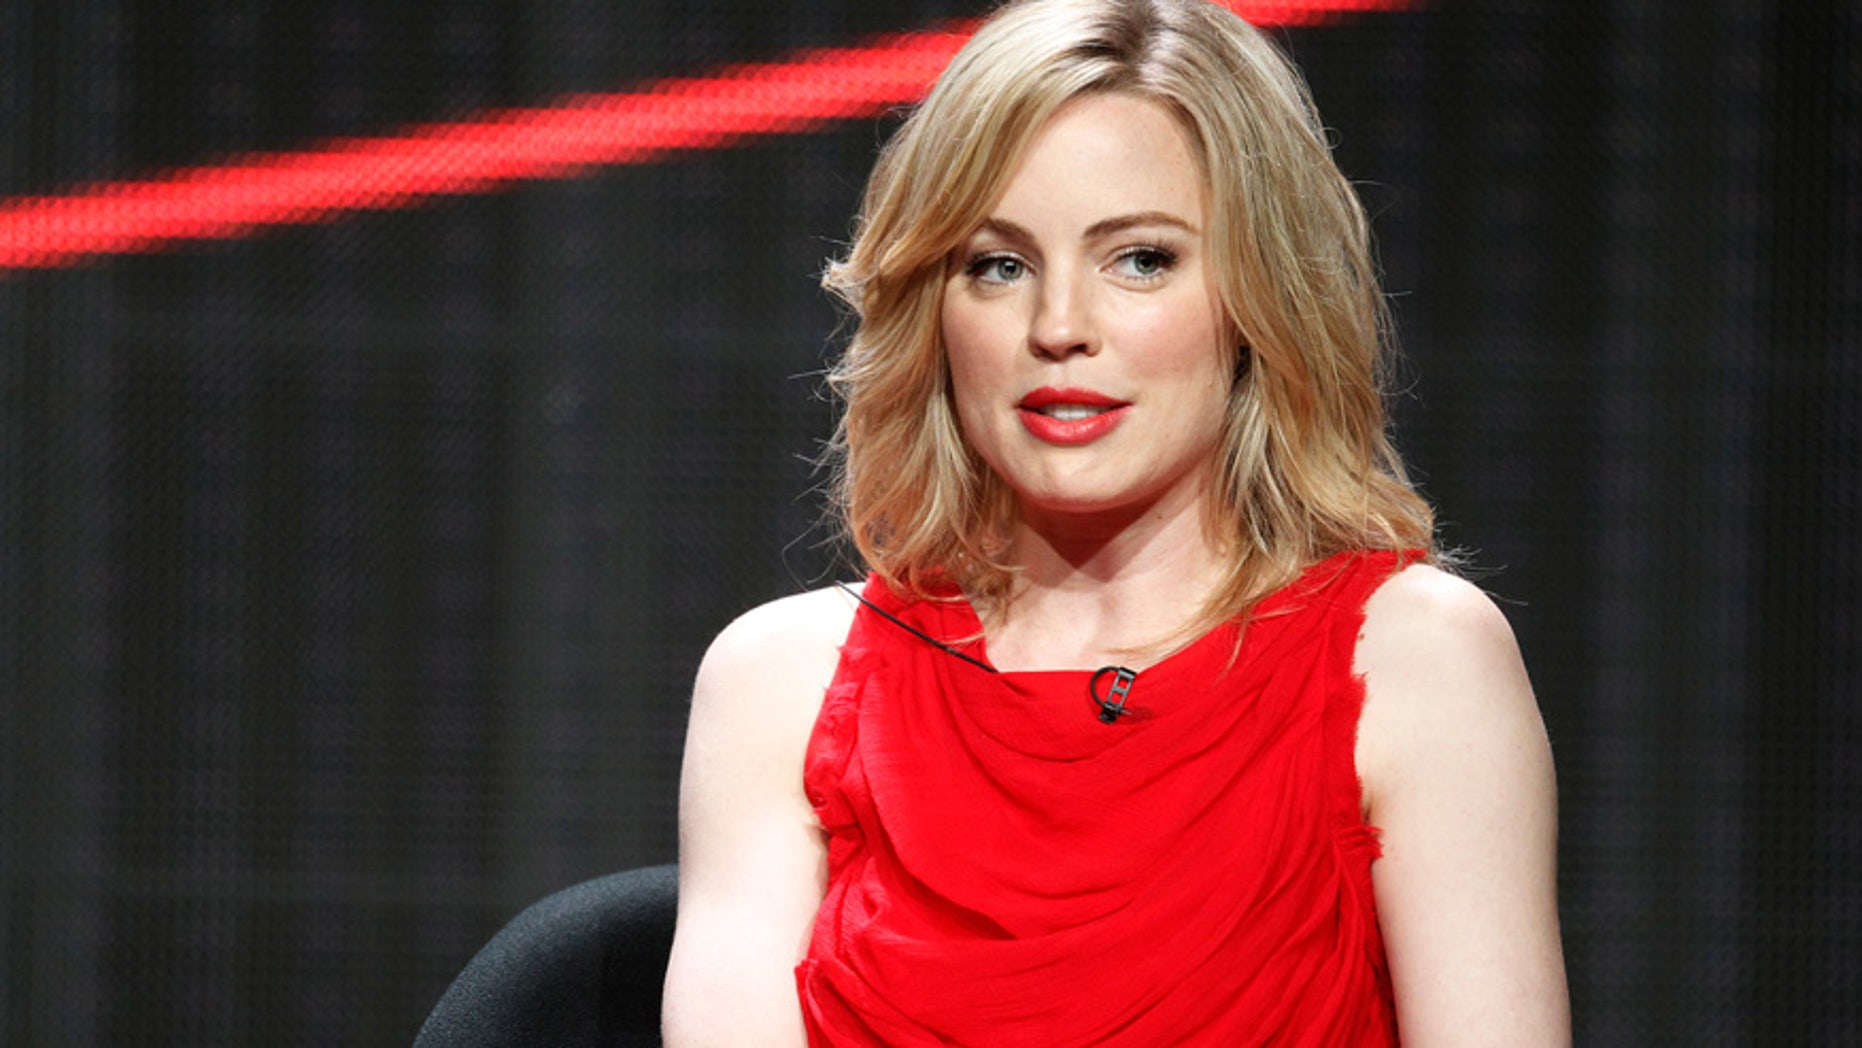 Australian actress Melissa George speaks during an HBO presentation at the Cable portion of the Television Critics Association summer press tour in Beverly Hills.